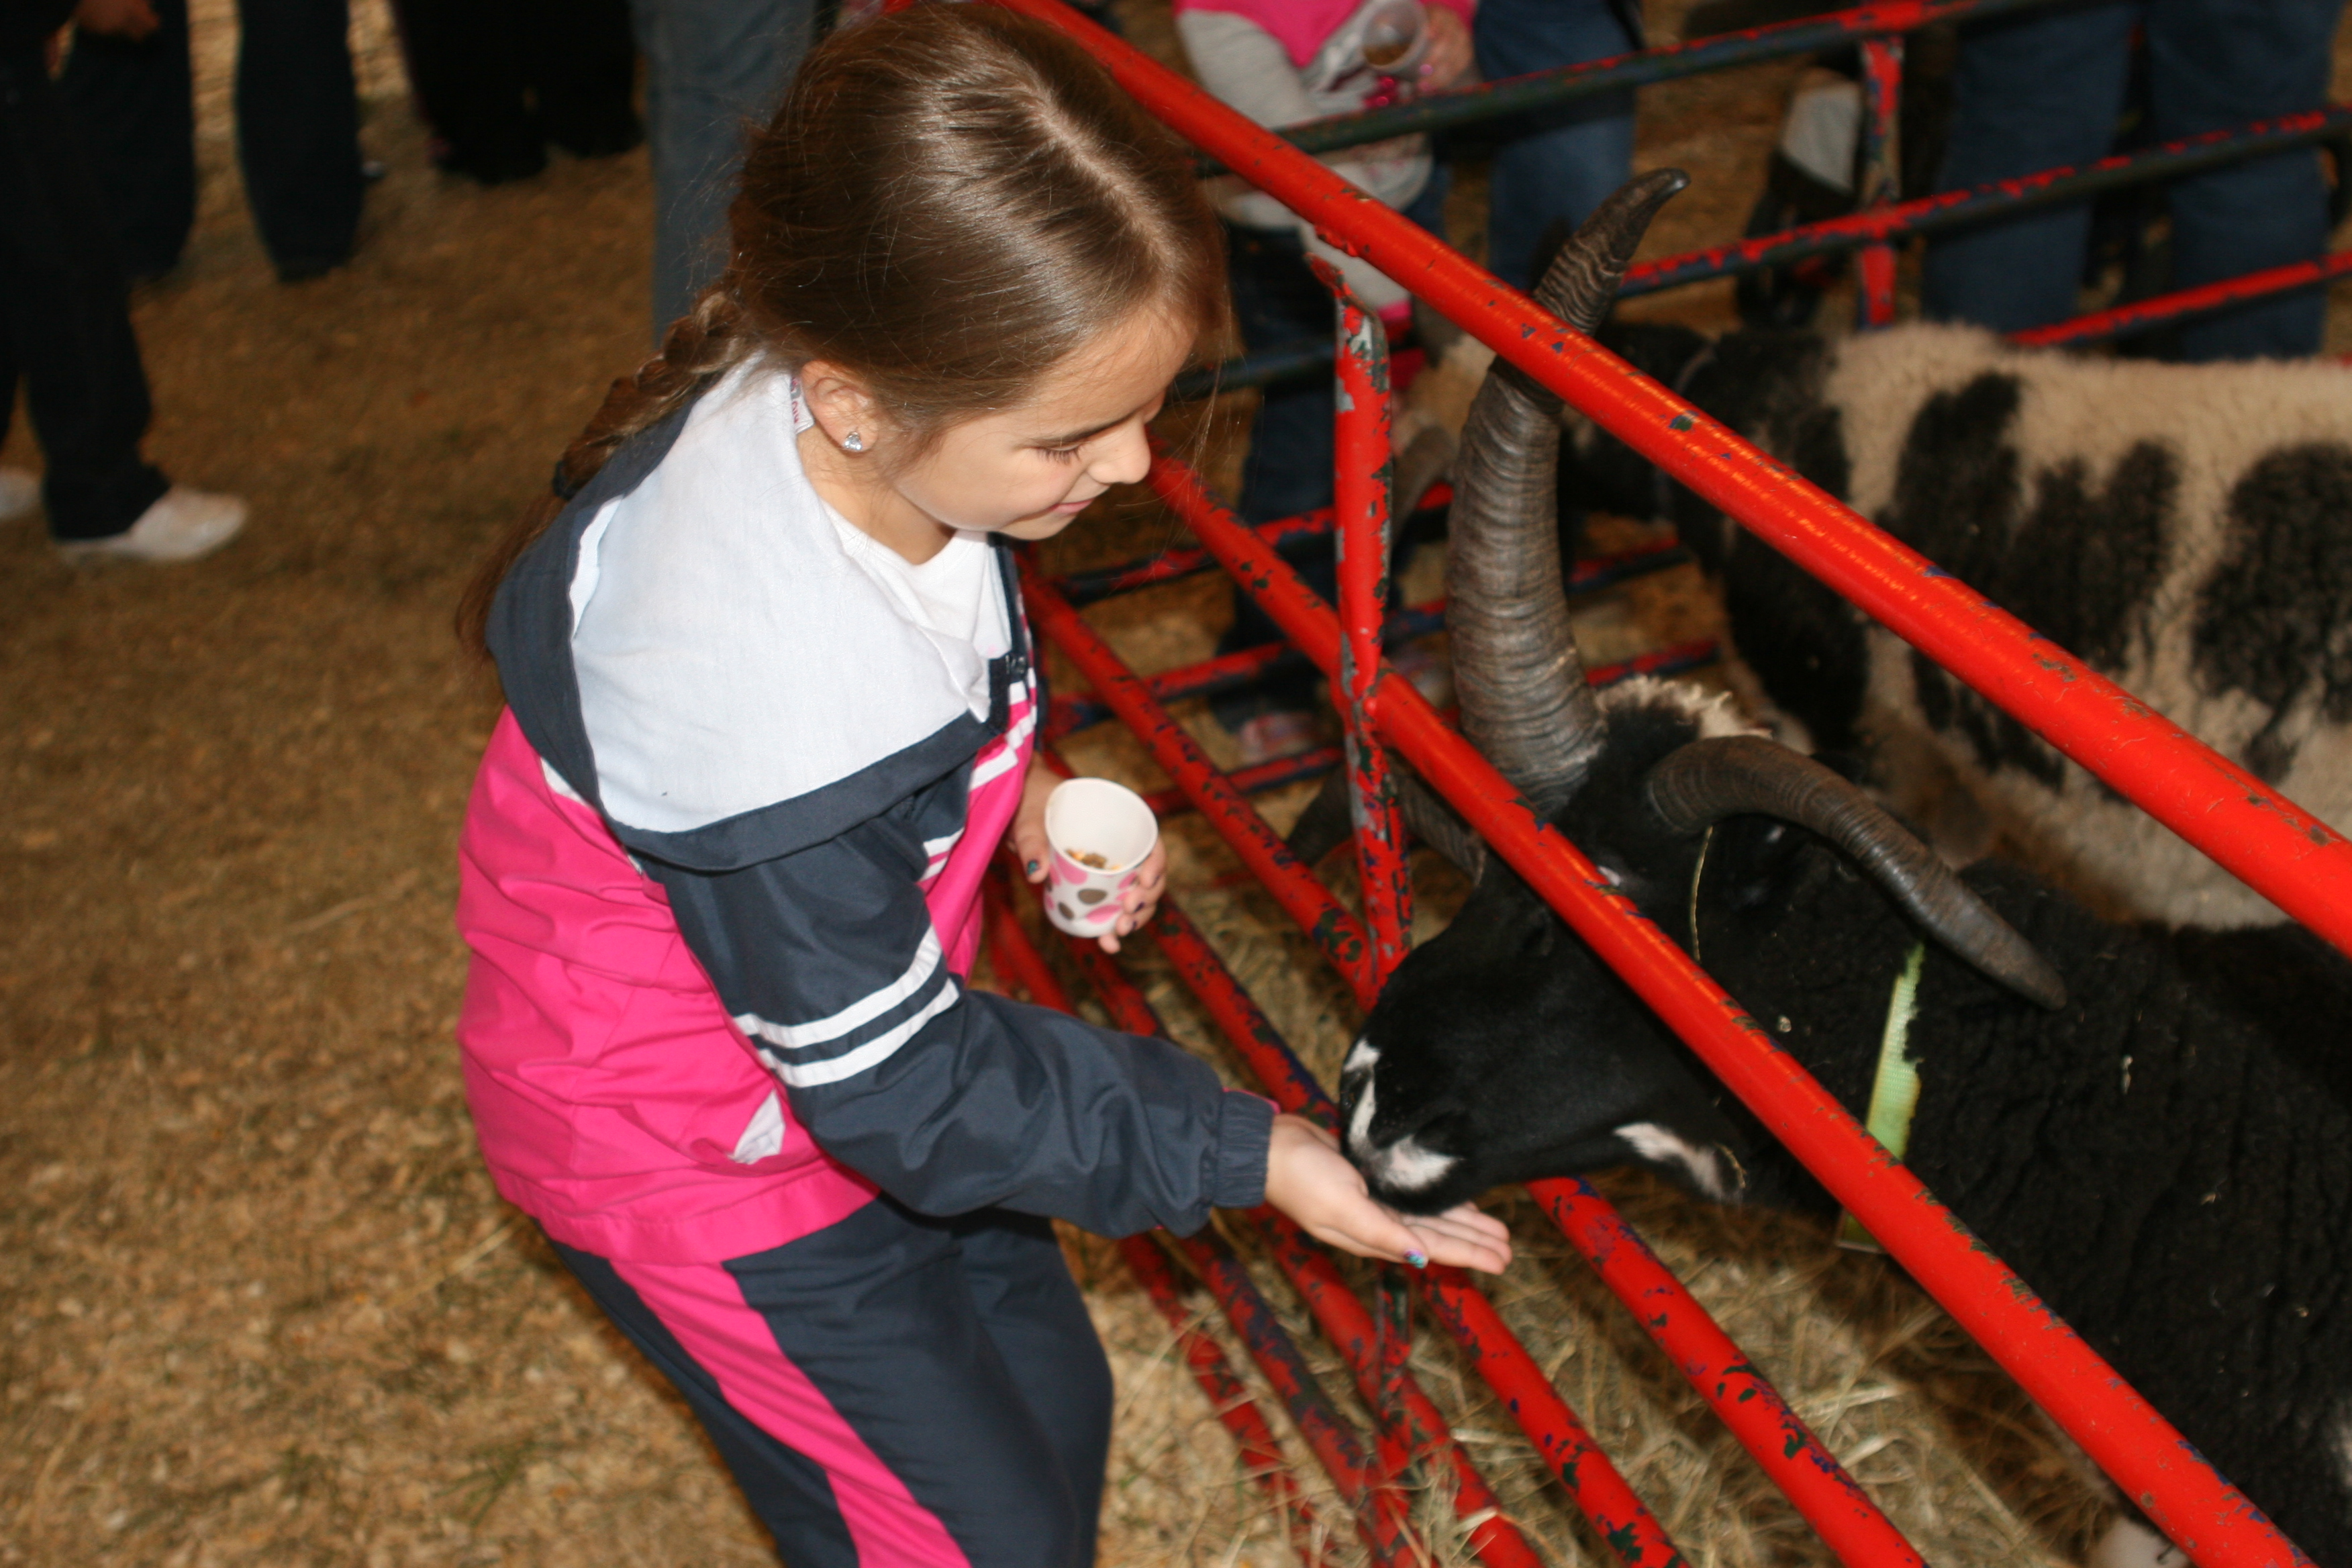 University of Georgia Cooperative Extension experts say washing hands after petting animals at fairs and festivals is a must. Petting zoos and farms can be a source of E. coli transmission. Reduce your risk of becoming ill by visiting hand-washing stations immediately and thoroughly washing your hands.